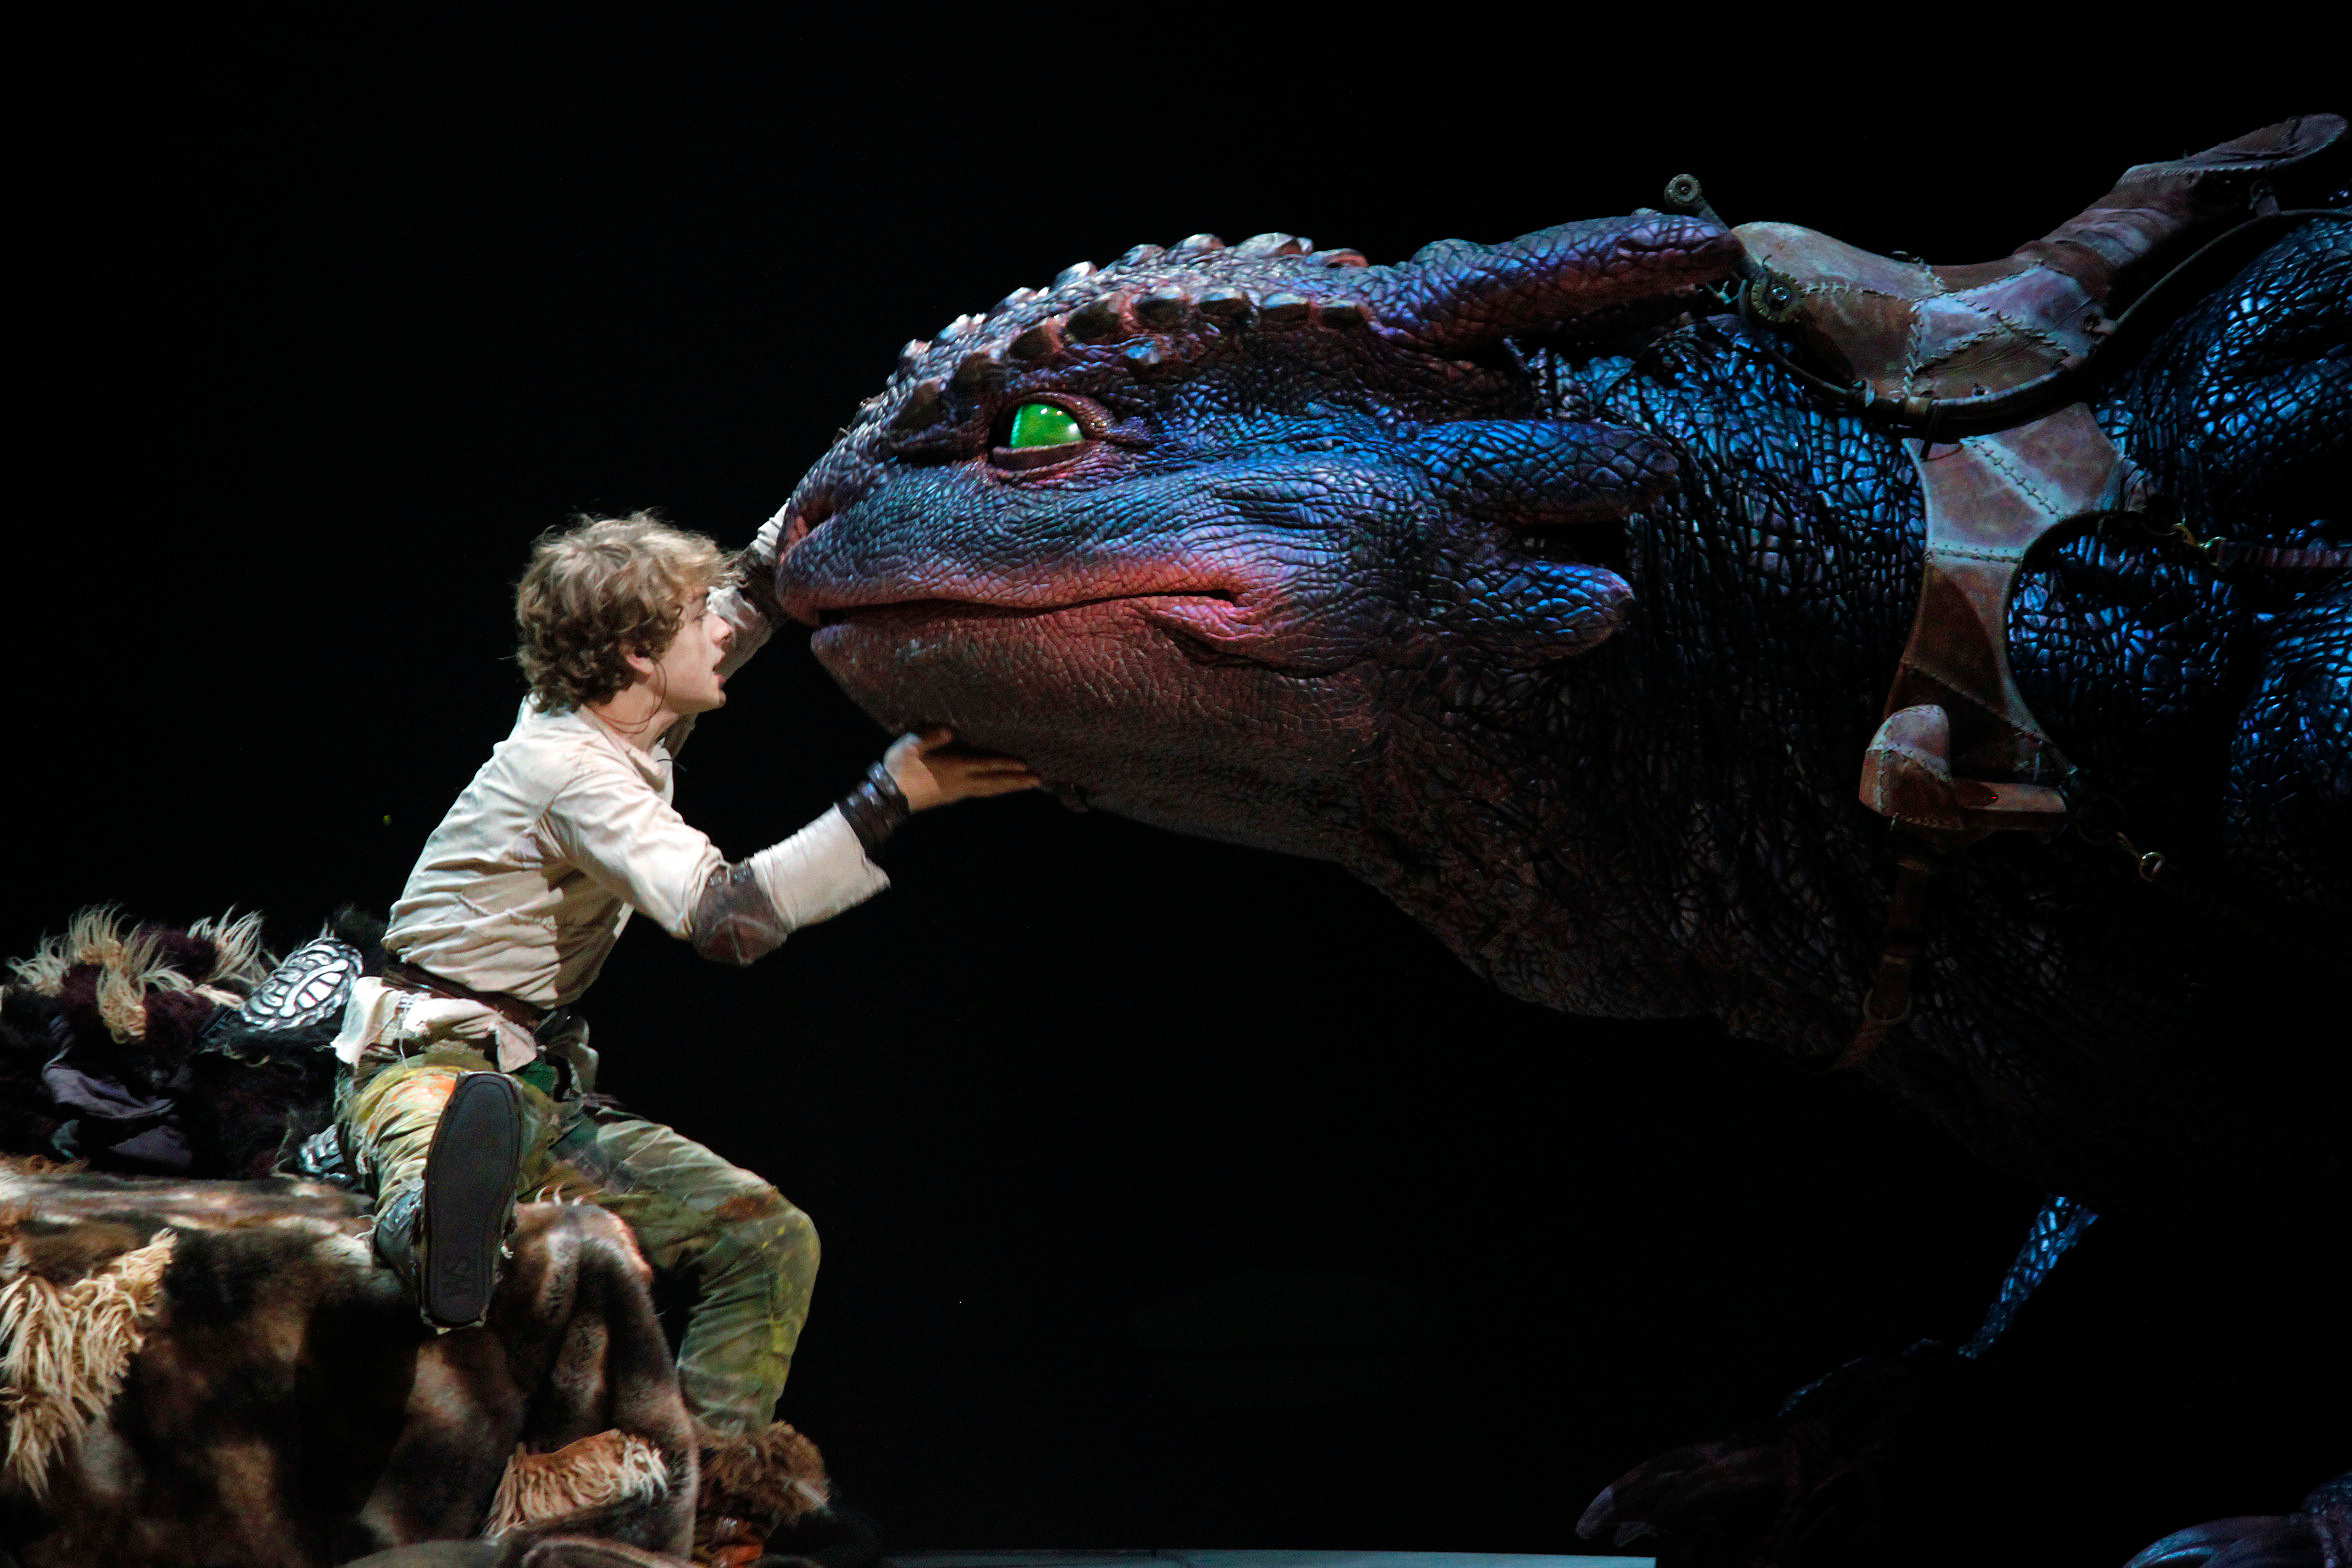 Filehiccup toothless how to train your dragon live spectacular filehiccup toothless how to train your dragon live spectacularg ccuart Image collections